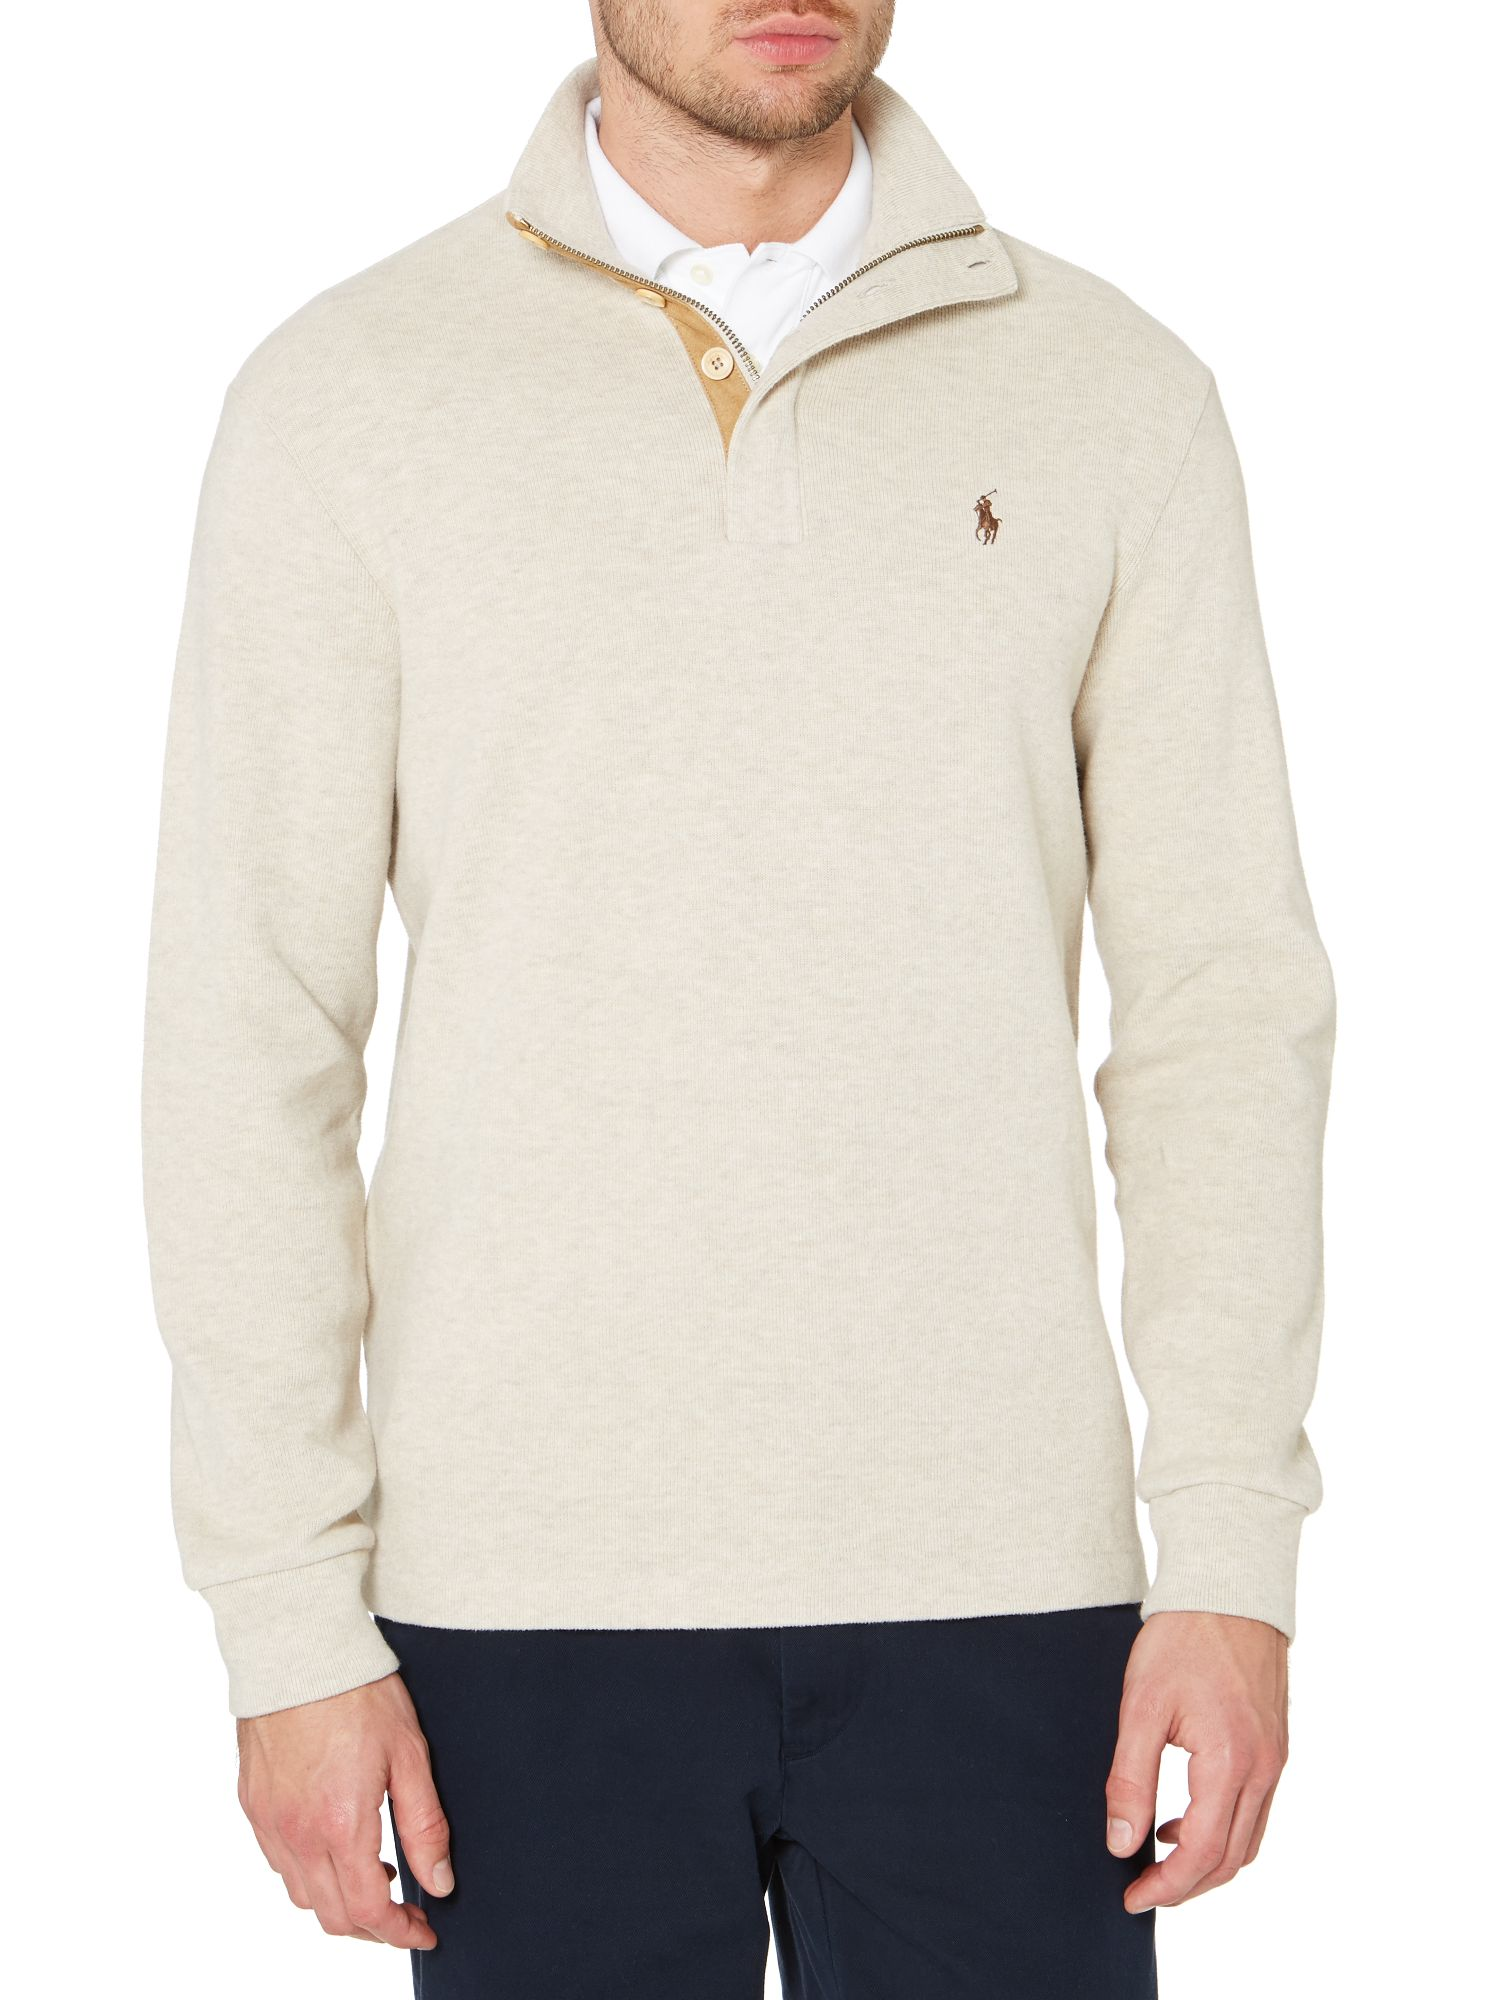 Mock half button sweatshirt